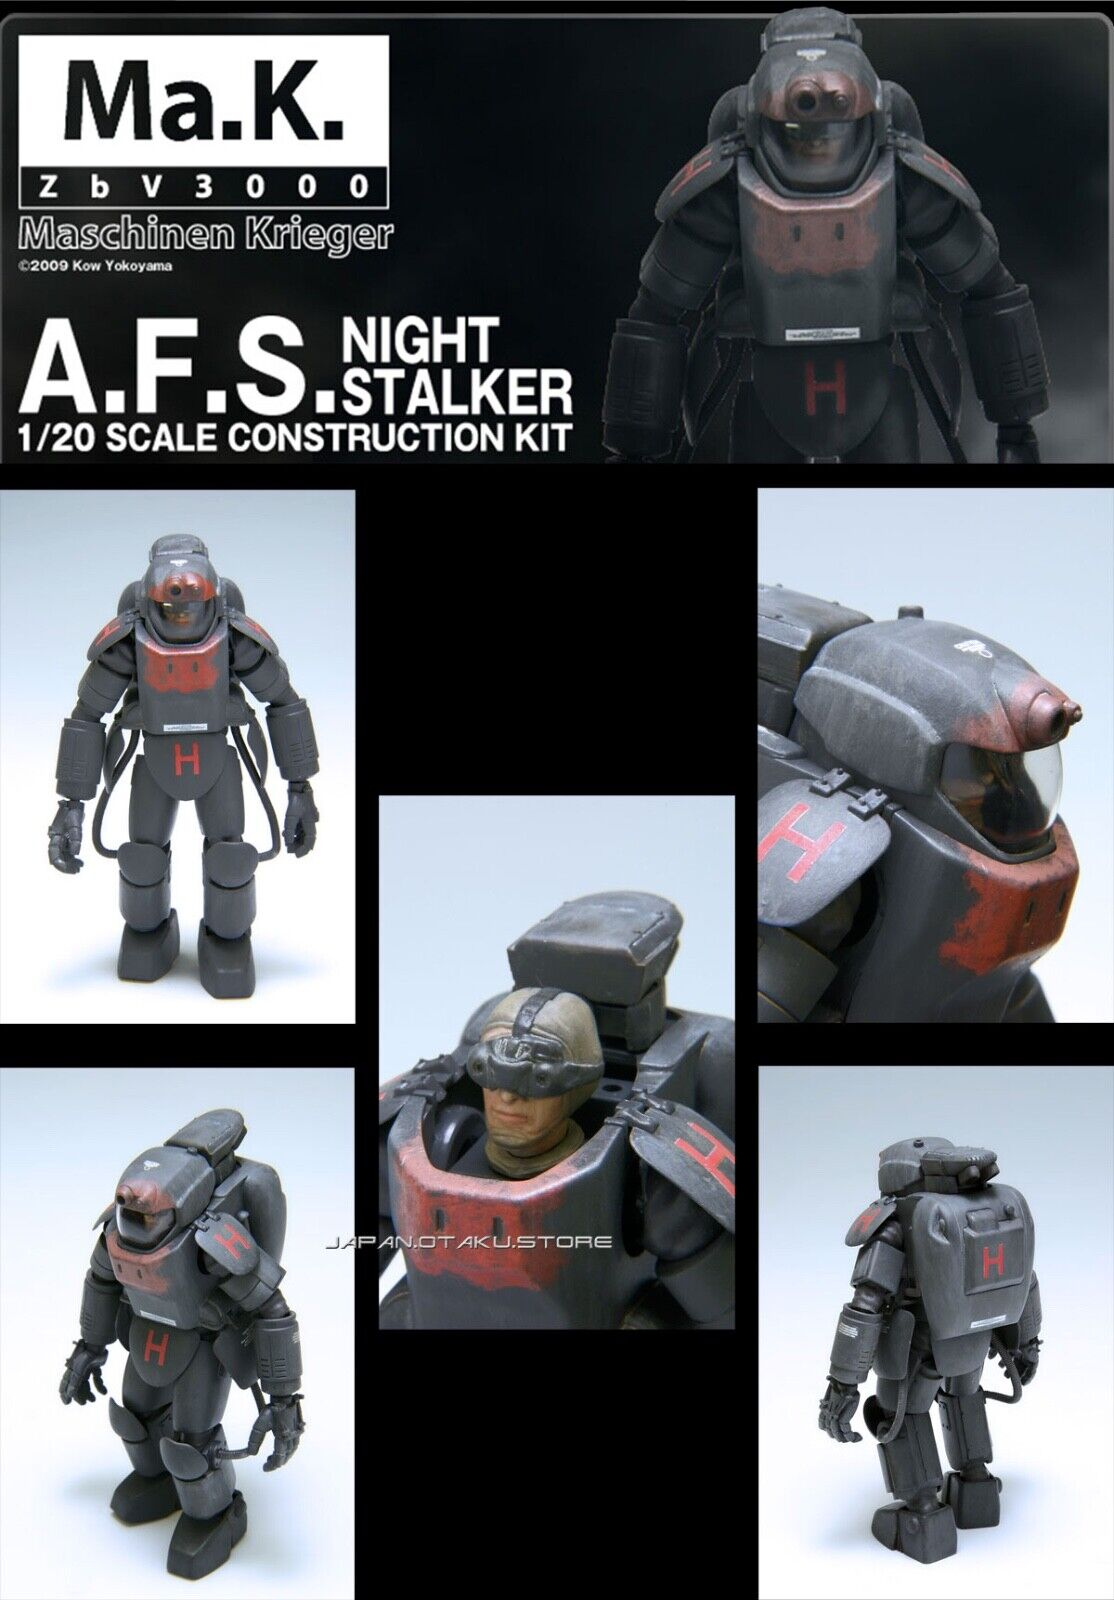 Wave 1 20 Ma.K. SF3D RECON AFS NIGHT NIGHT NIGHT STALKER MODEL KIT be5